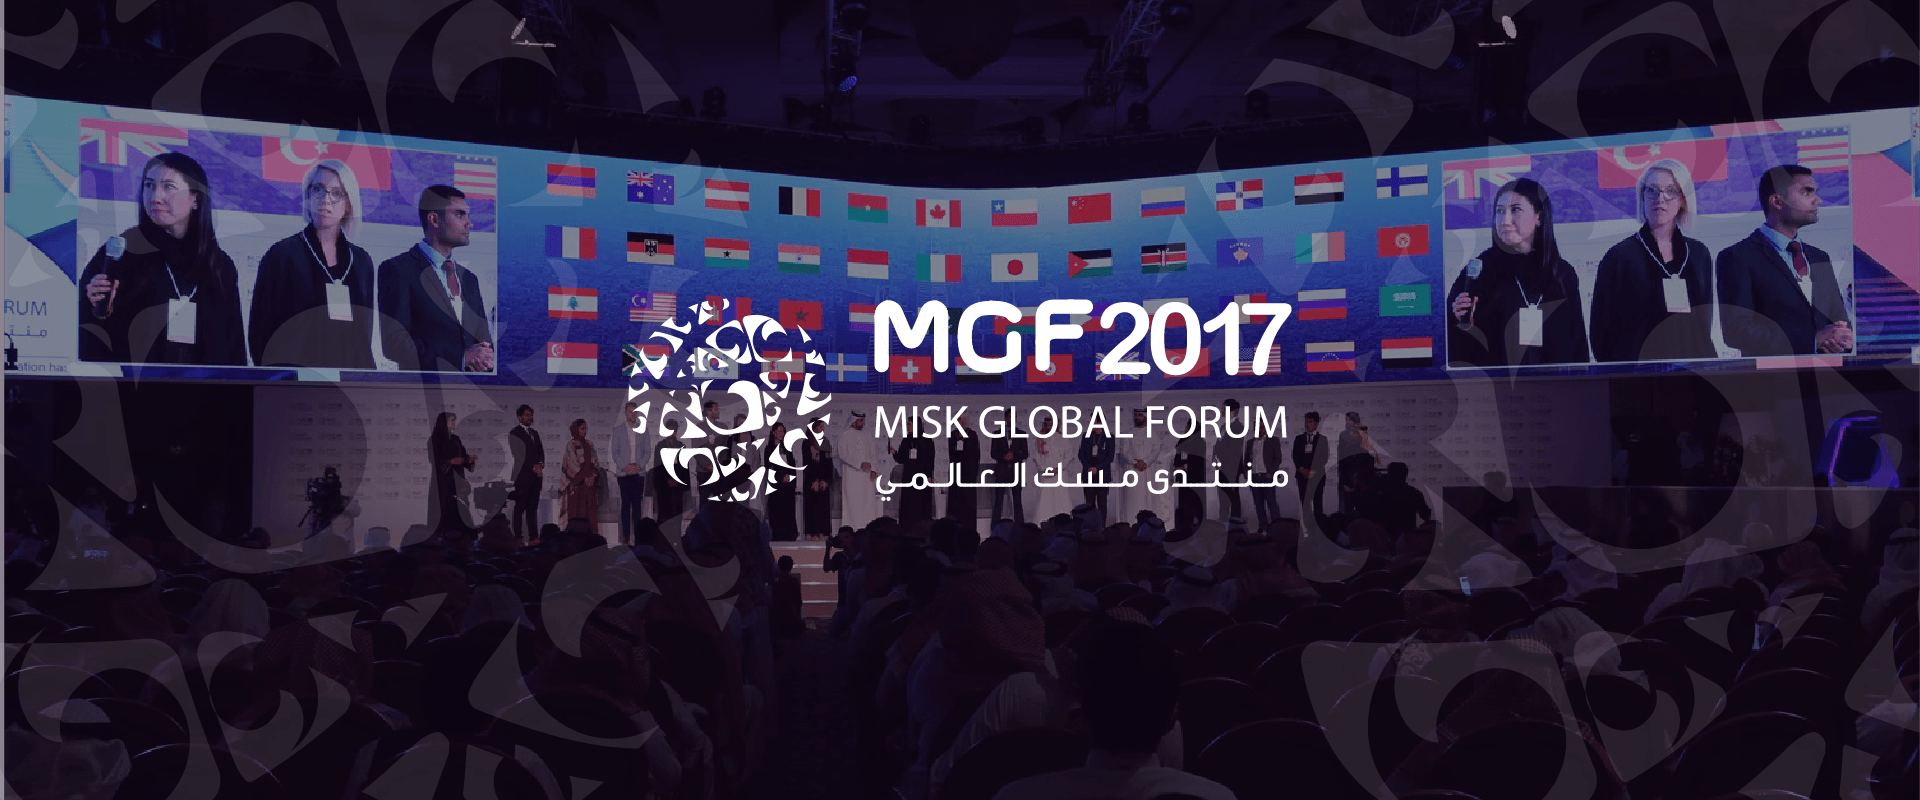 MiSK Global Forum (MGF) - 15 et 16 novembre. Four Seasons, Riyad.